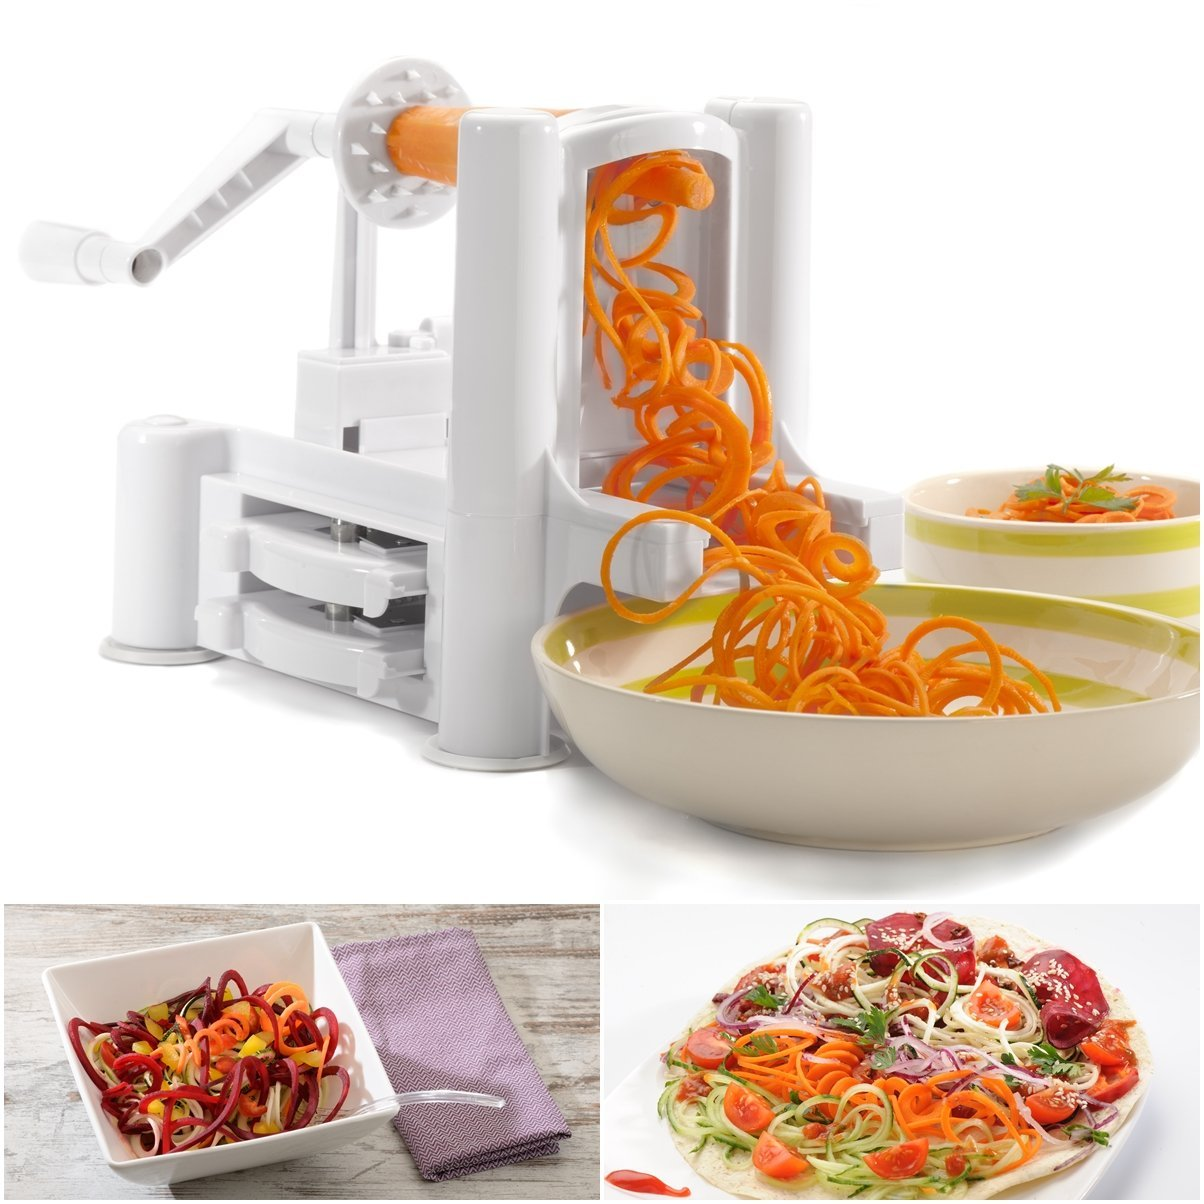 WonderVeg Tri Blade Vegetable Spiralizer